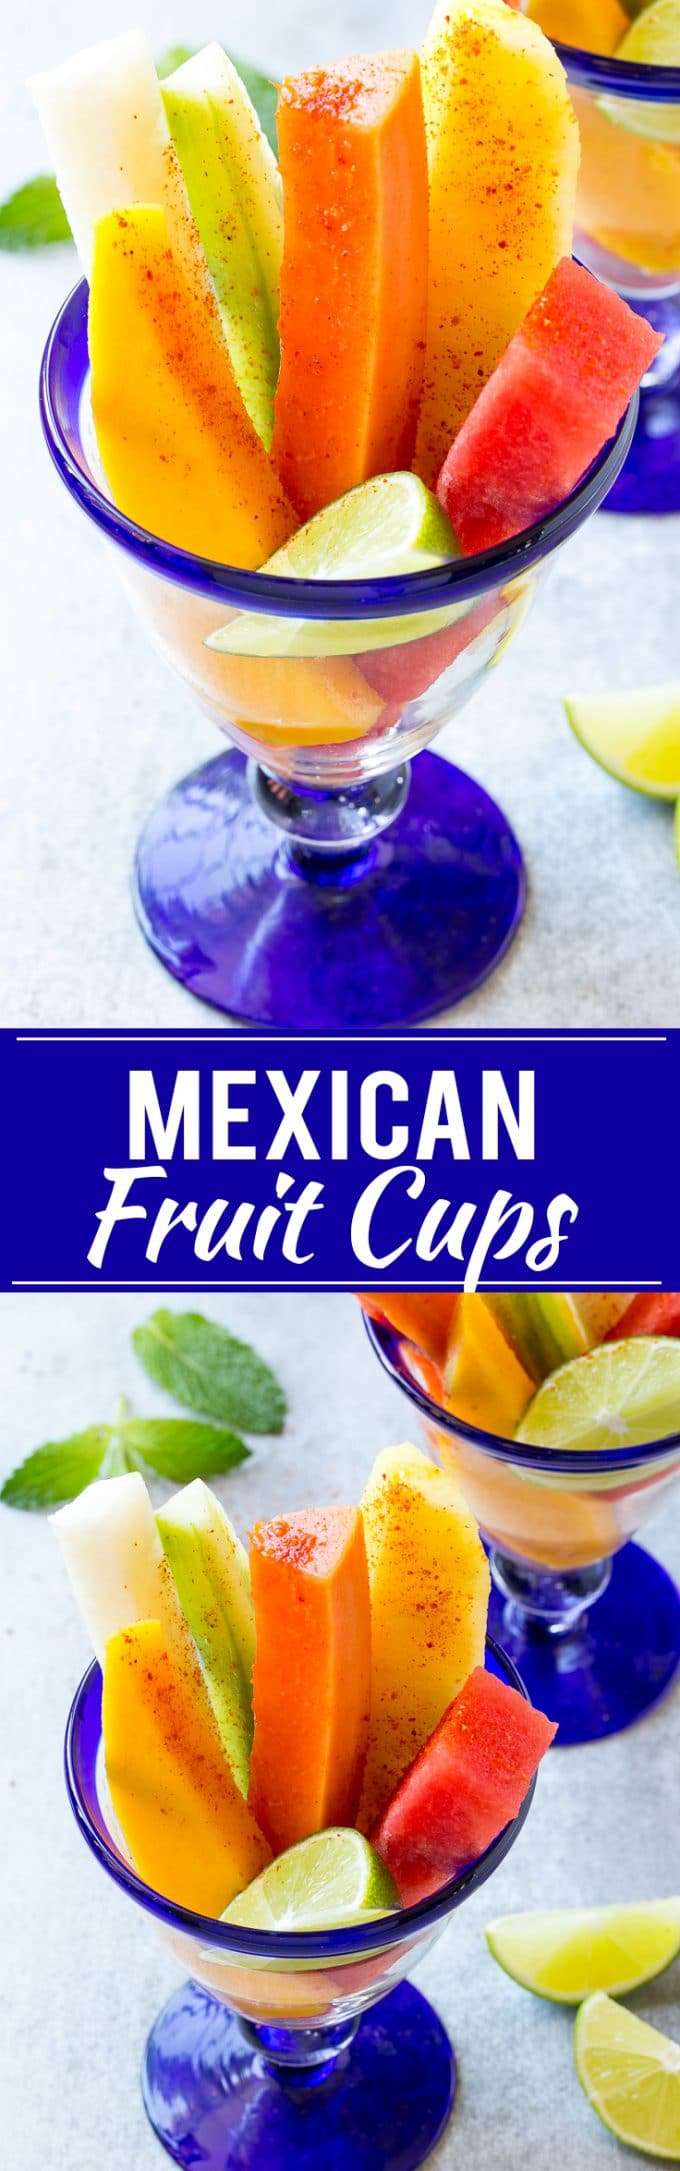 Mexican Fruit Cups Recipe | Fruit Cups | Healthy Fruit Recipe #fruit #fruitcup #watermelon #pineapple #snack #healthy #dinneratthezoo